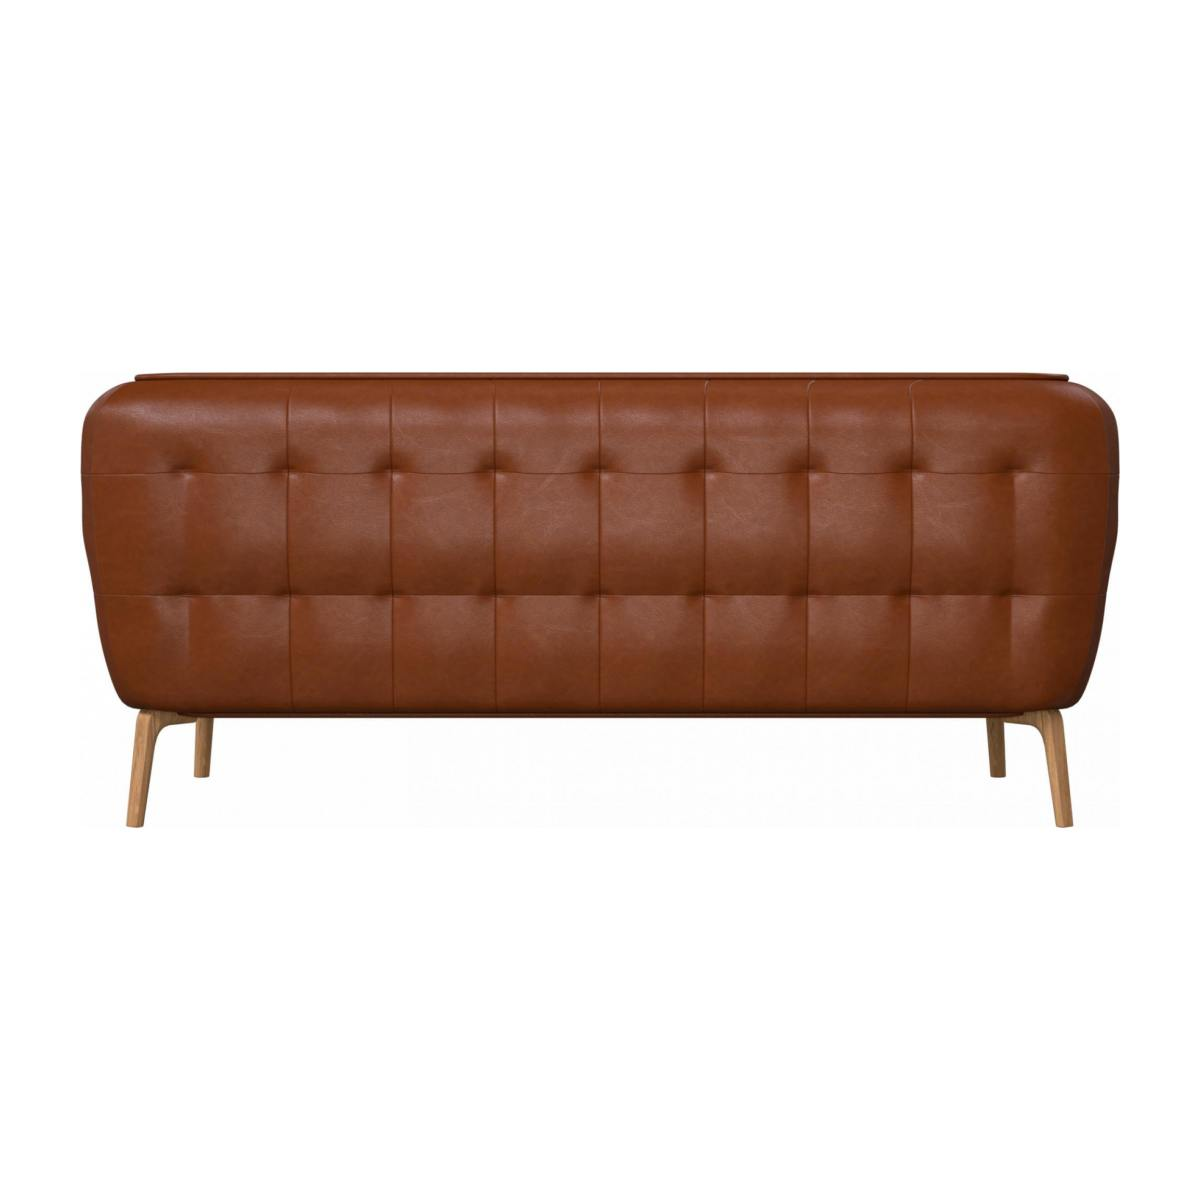 2 seater sofa in Vintage aniline leather, old chestnut and natural oak feet n°3